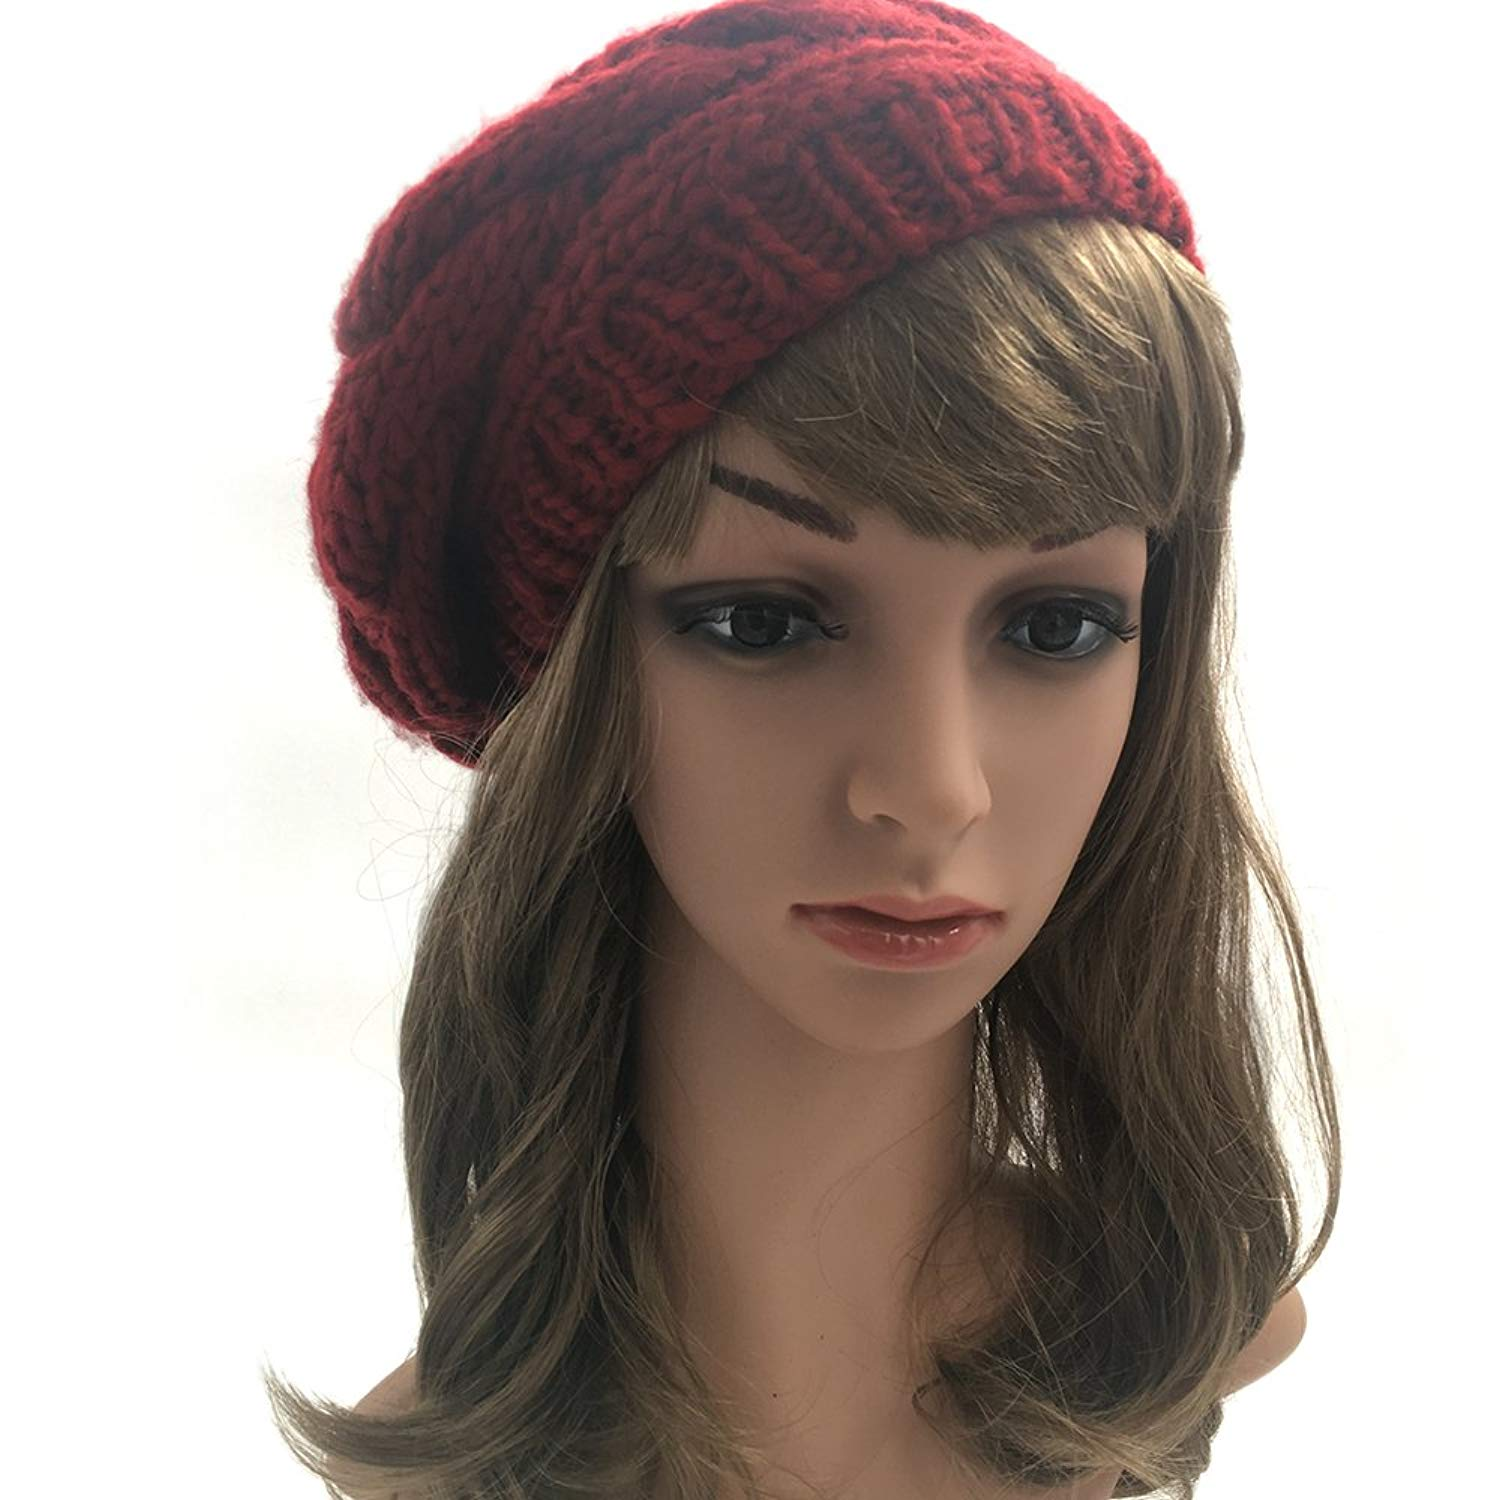 JULY SHEEP Womens Girls Winter Knitted Hat Wool Beret Pompom Hat Slouchy Beanie with Real Fox Fur Ball Ski Cap